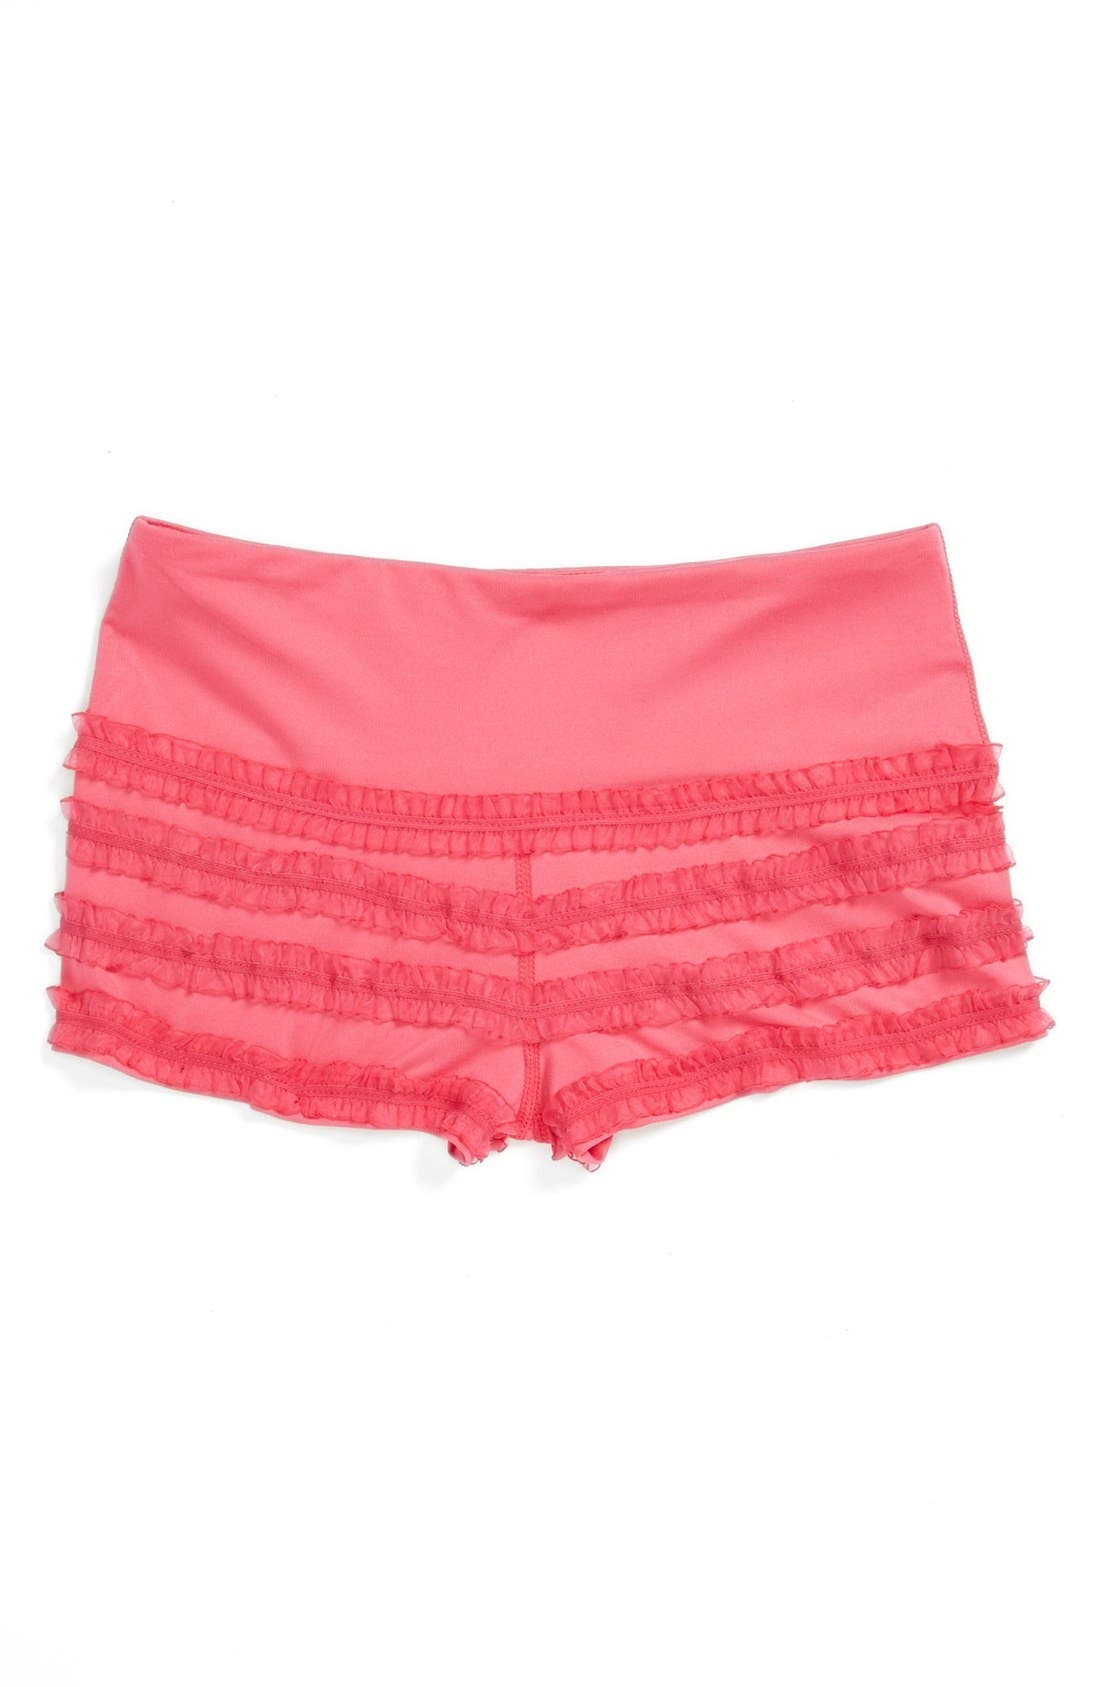 Alternate Image 2  - Limeapple 'Dance' Ruffled Mini Shorts (Big Girls)